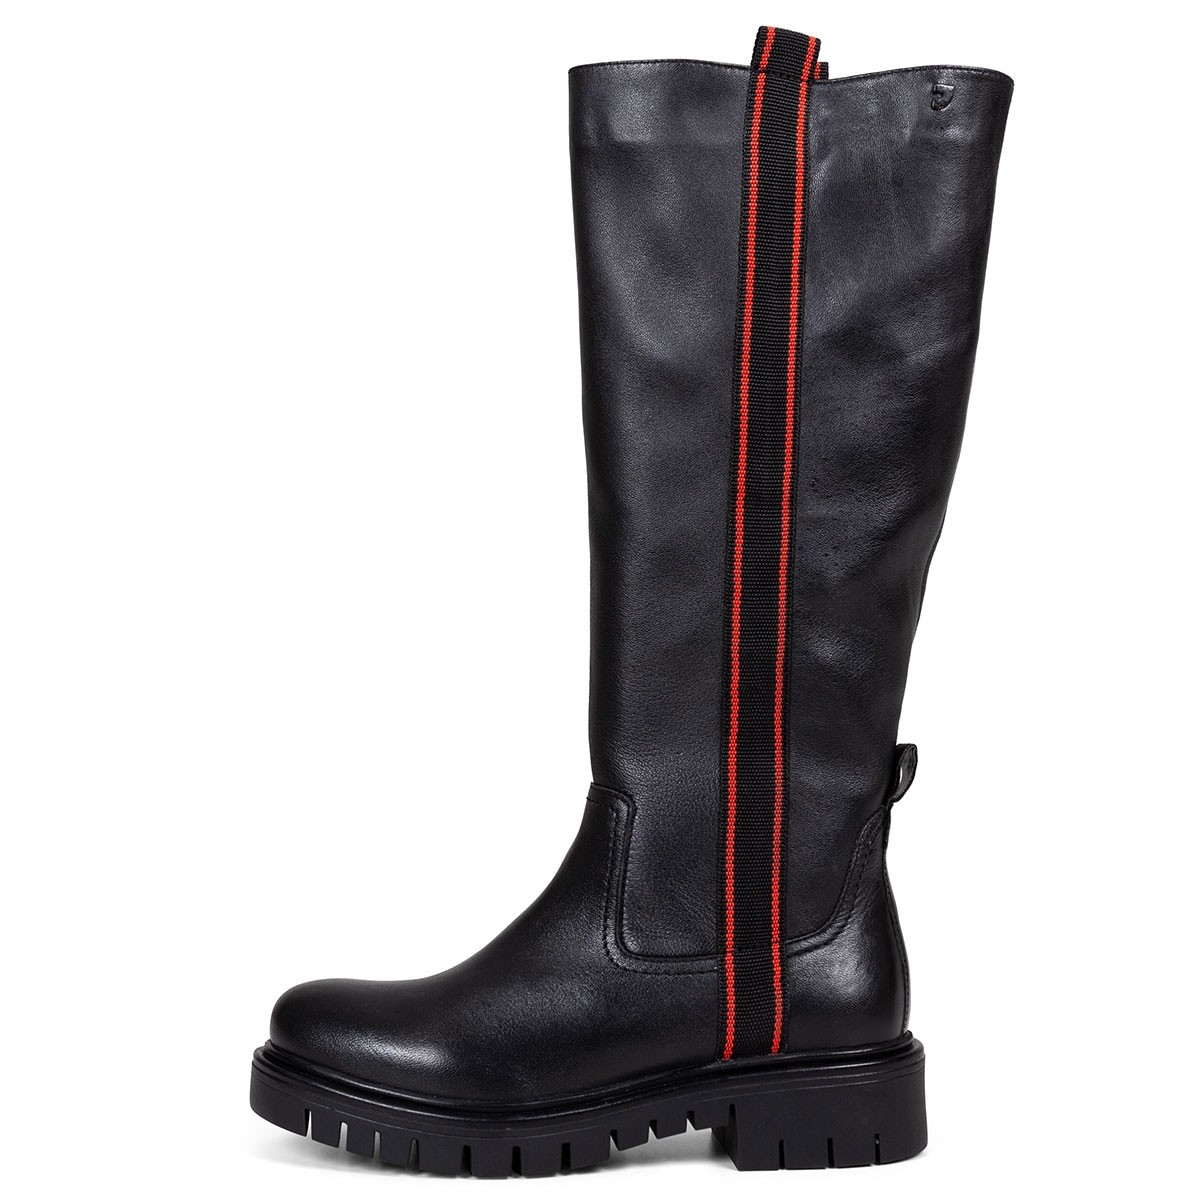 56553 Black BOOTS 2